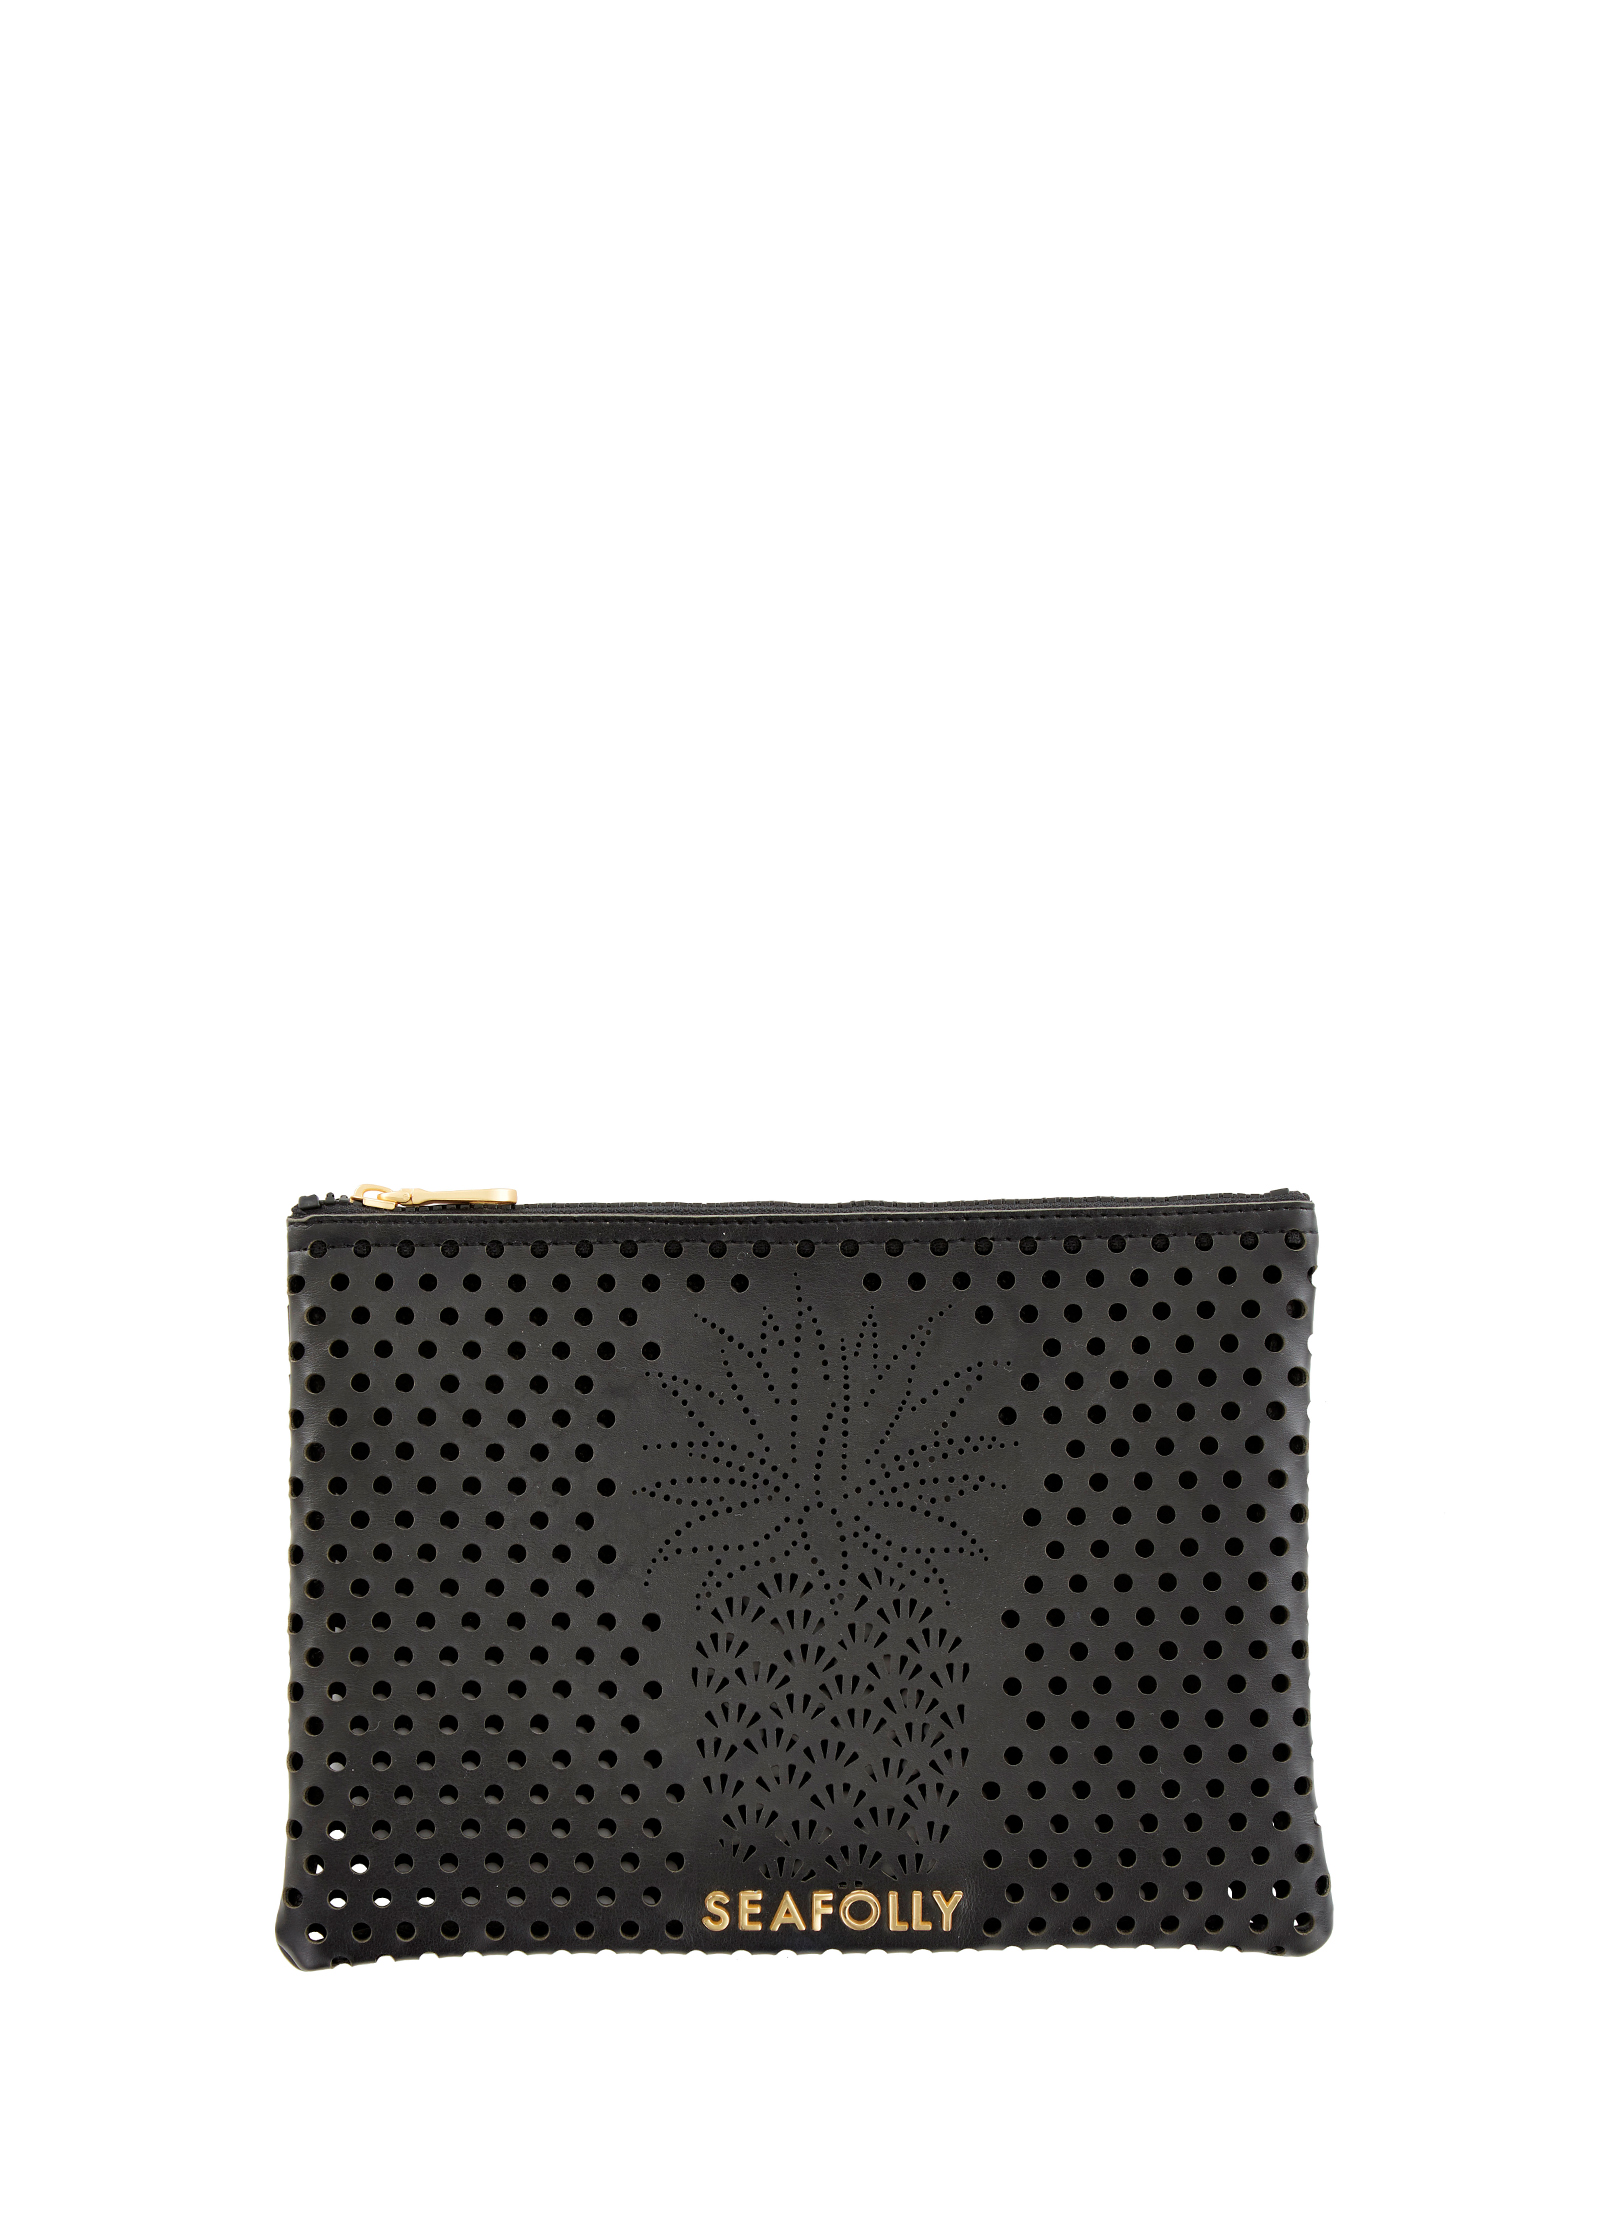 Seafolly Carried Away Pineapple Clutch - Black